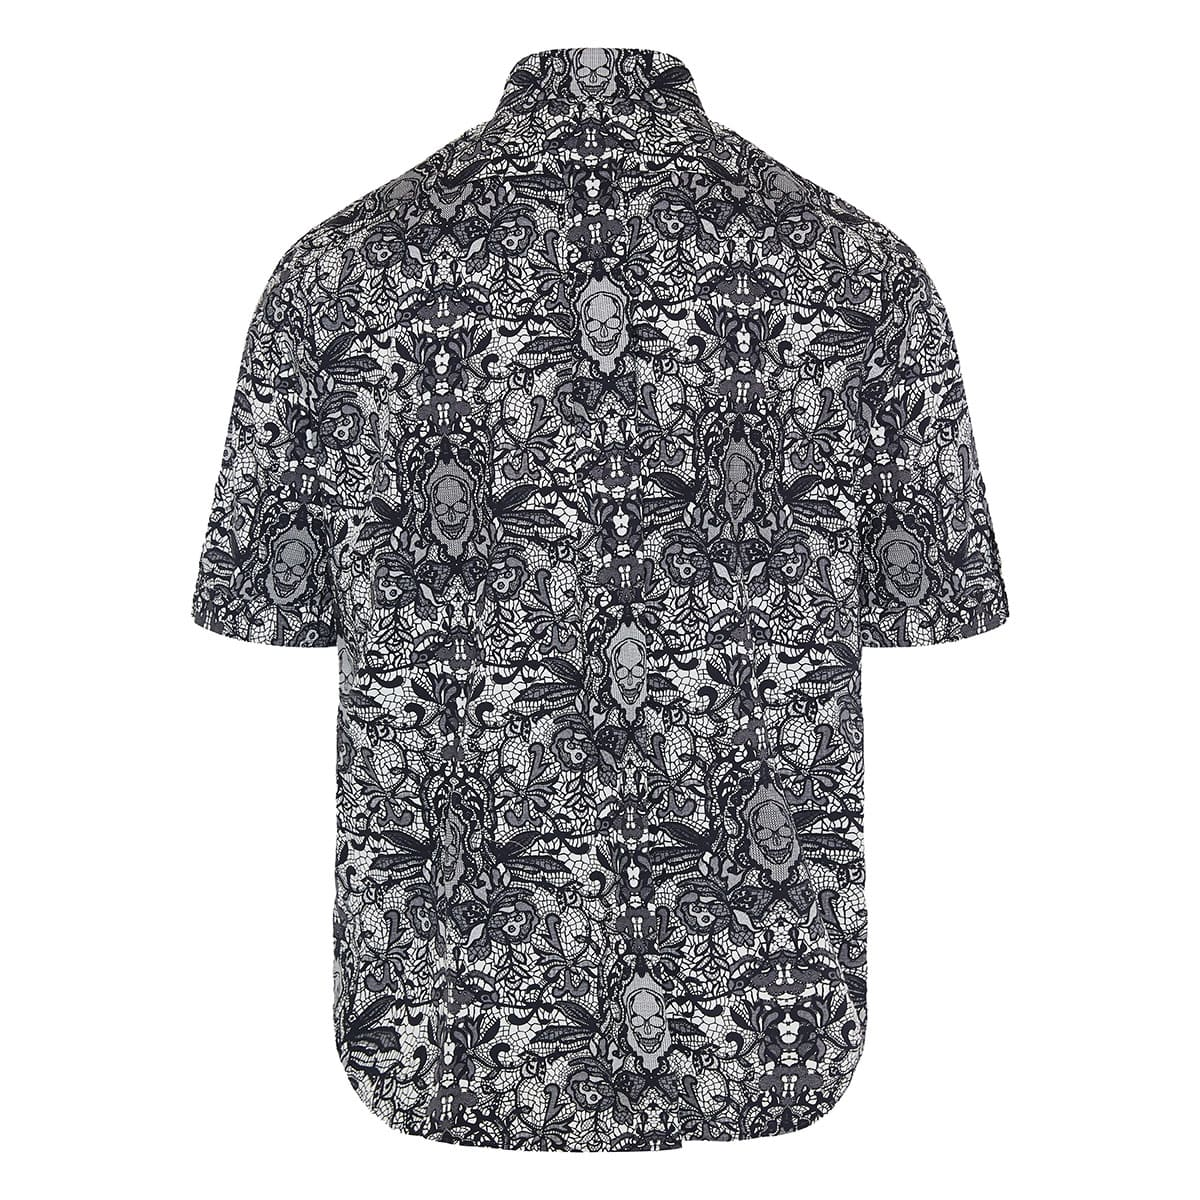 Skull printed short-sleeved shirt